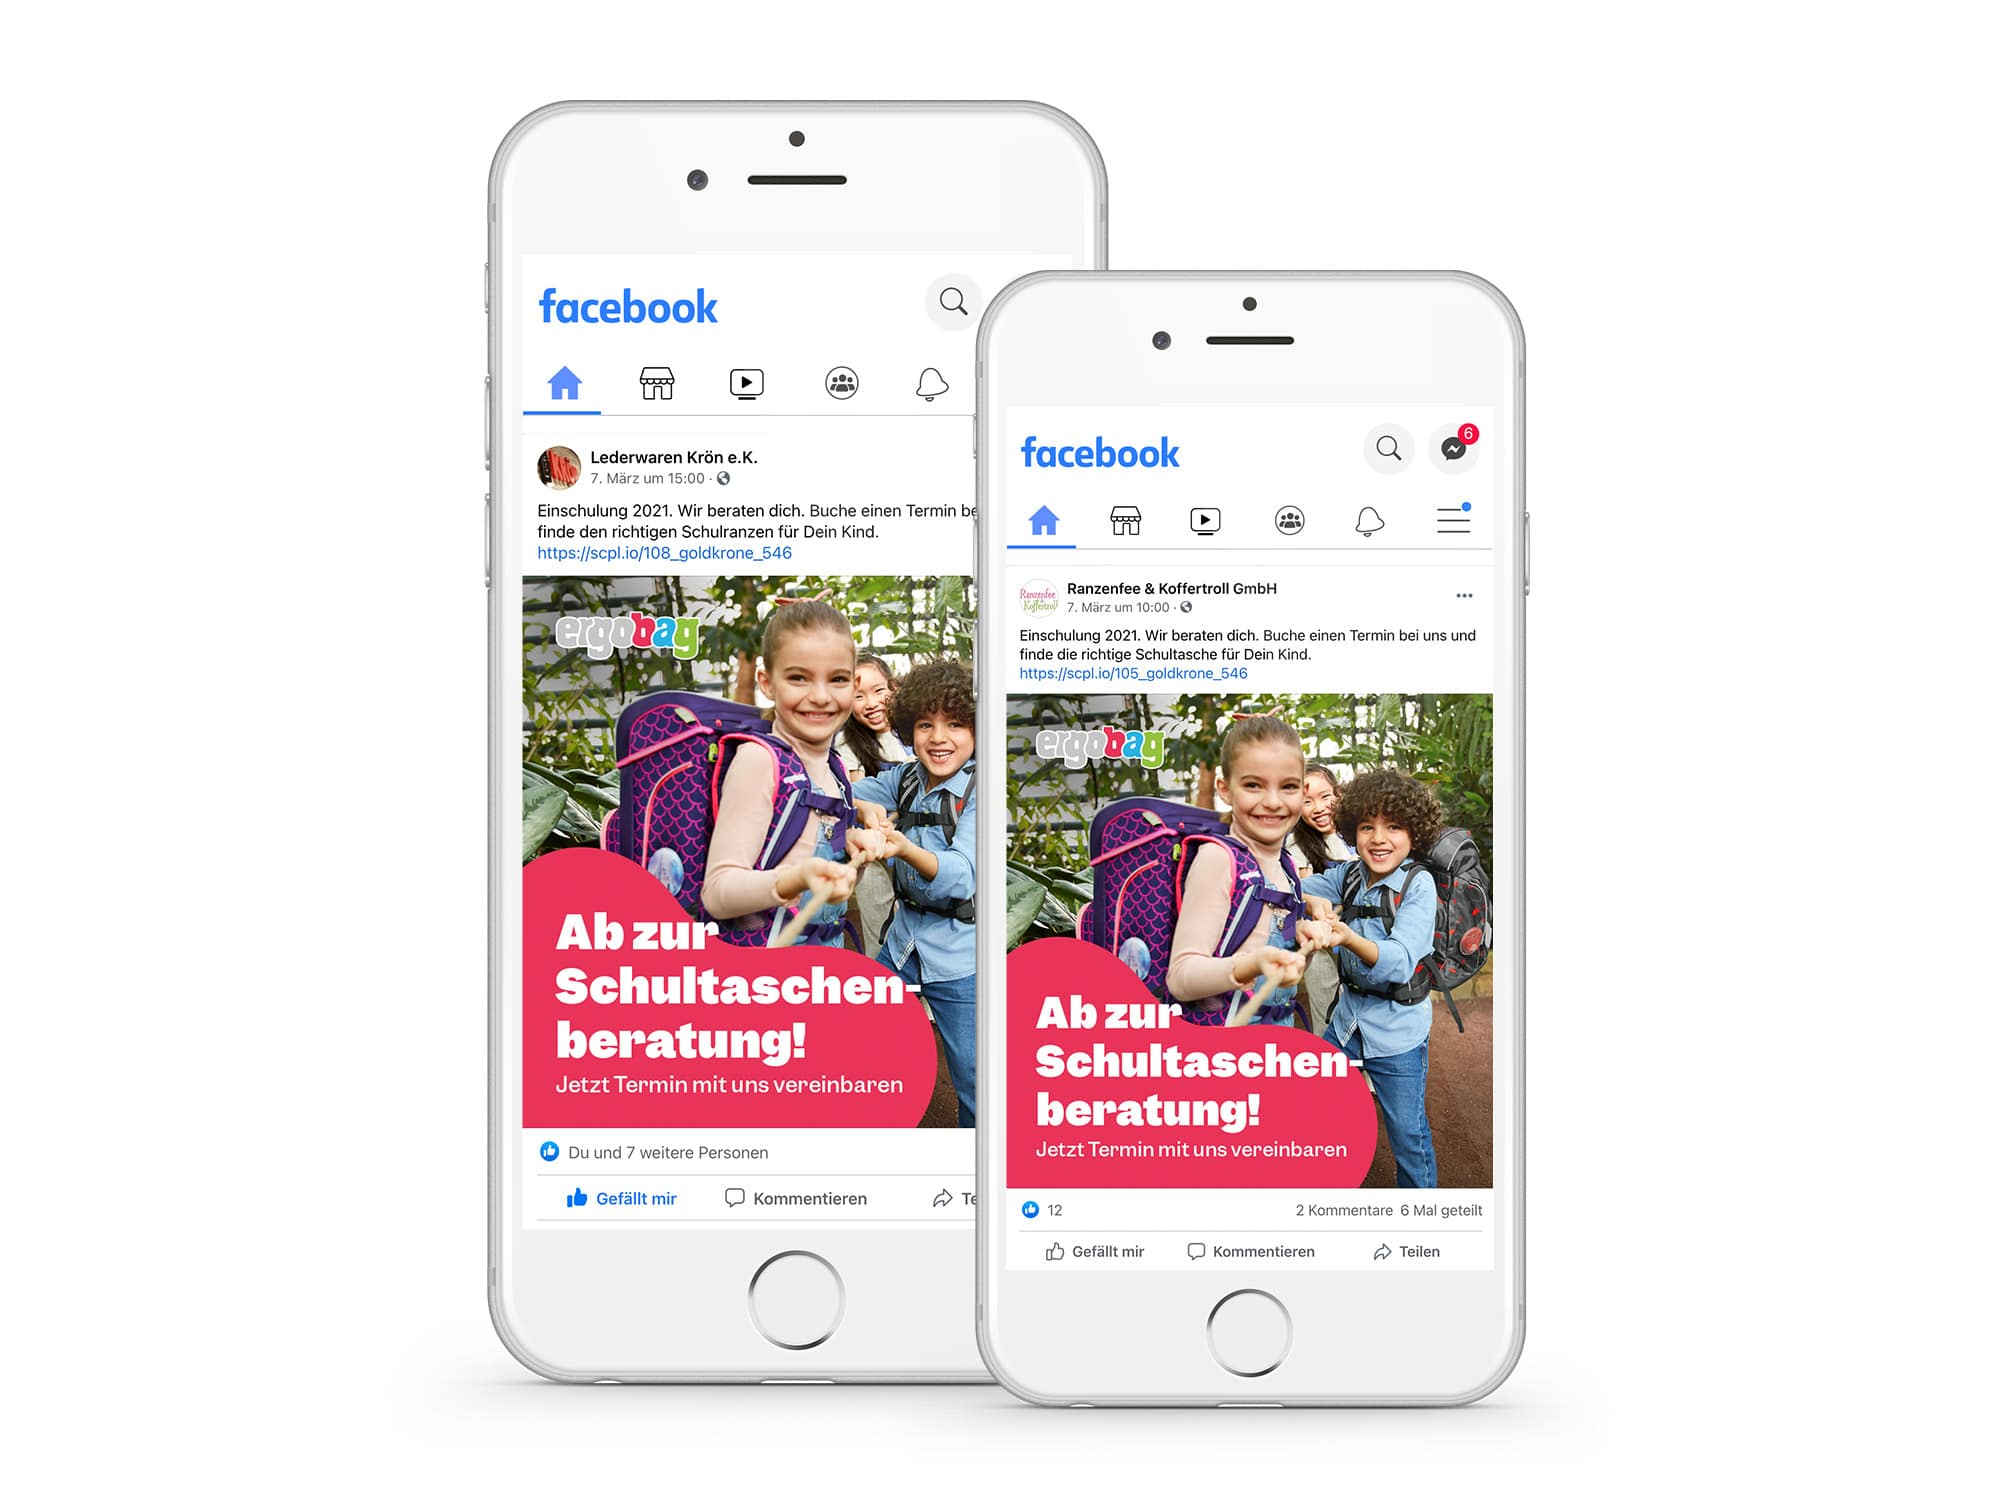 The posts are then automatically played out to the local target group via the dealer's channels (Facebook, Instagram, Google Display).